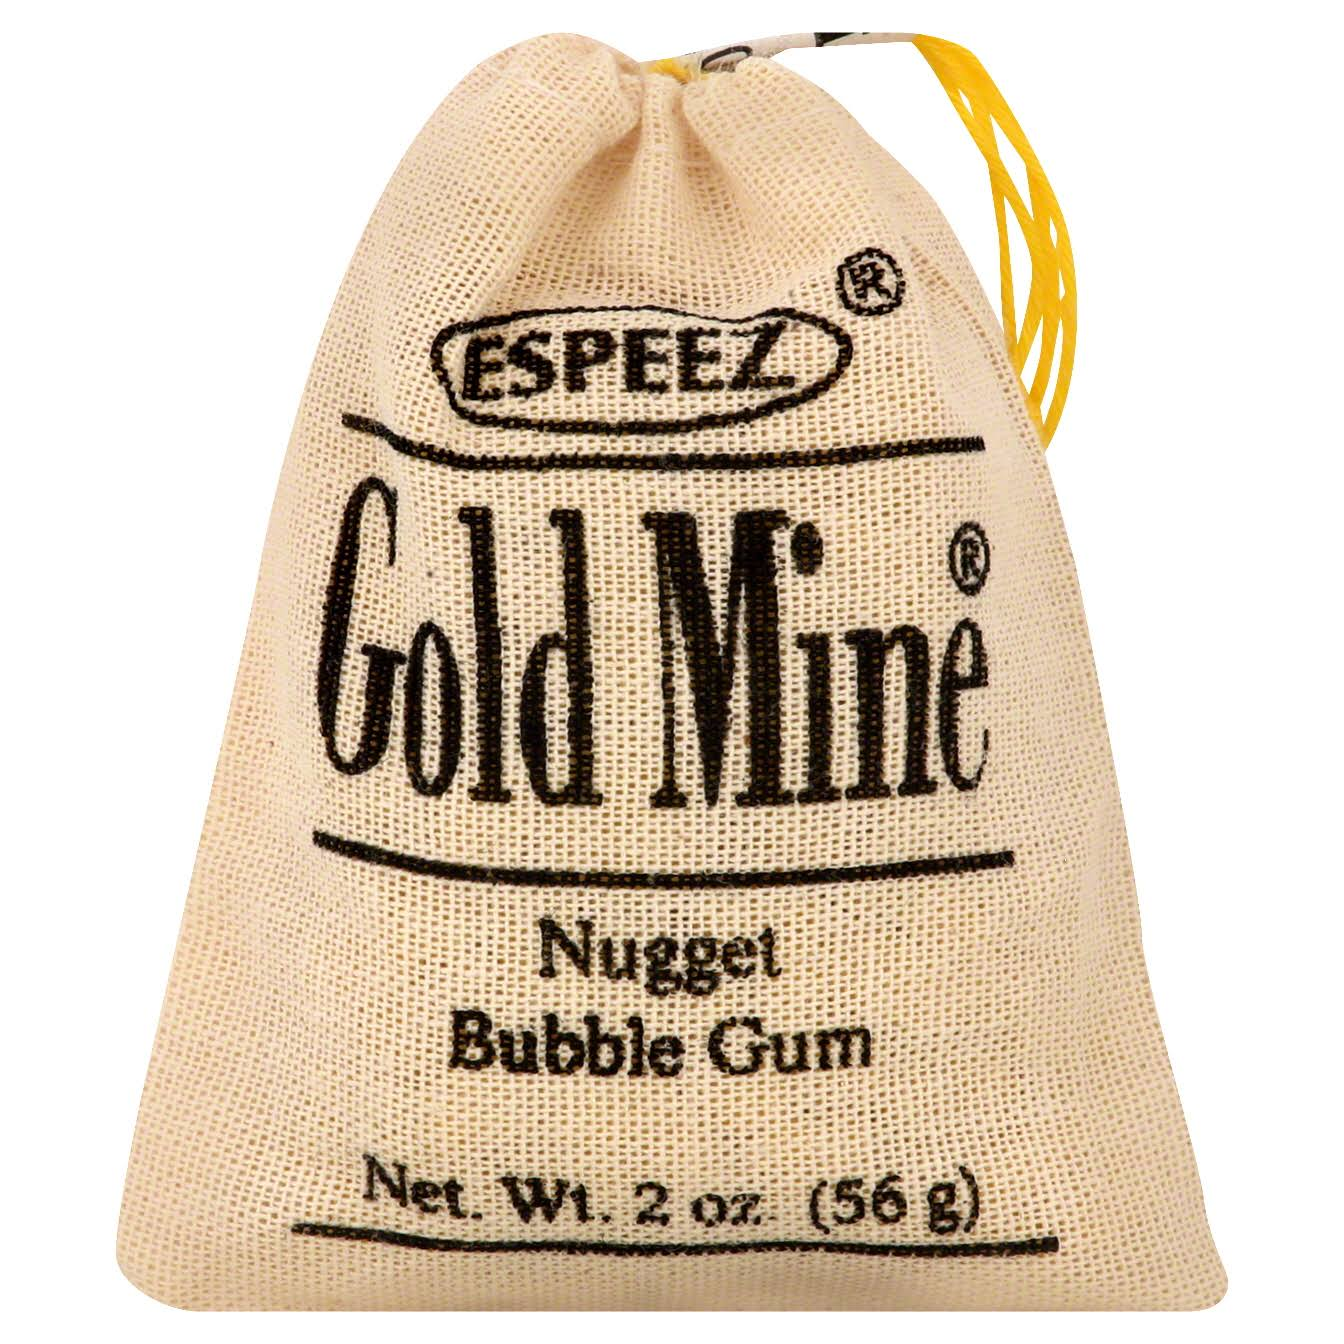 Bubble Gum - Nugget, 2oz